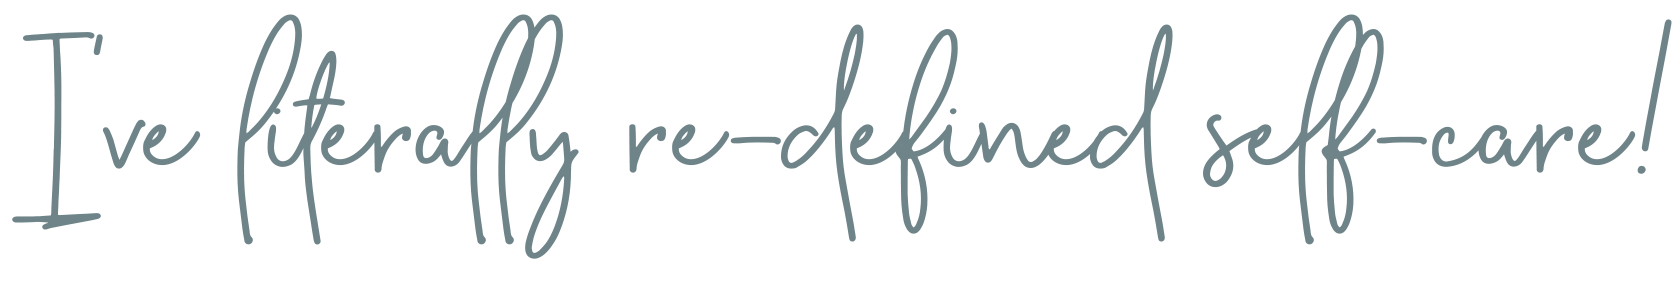 I've literally redefined self-care! | Lisa Kuzman Coaching | Self-Care & Wellness Coach, Therapist, and Mentor